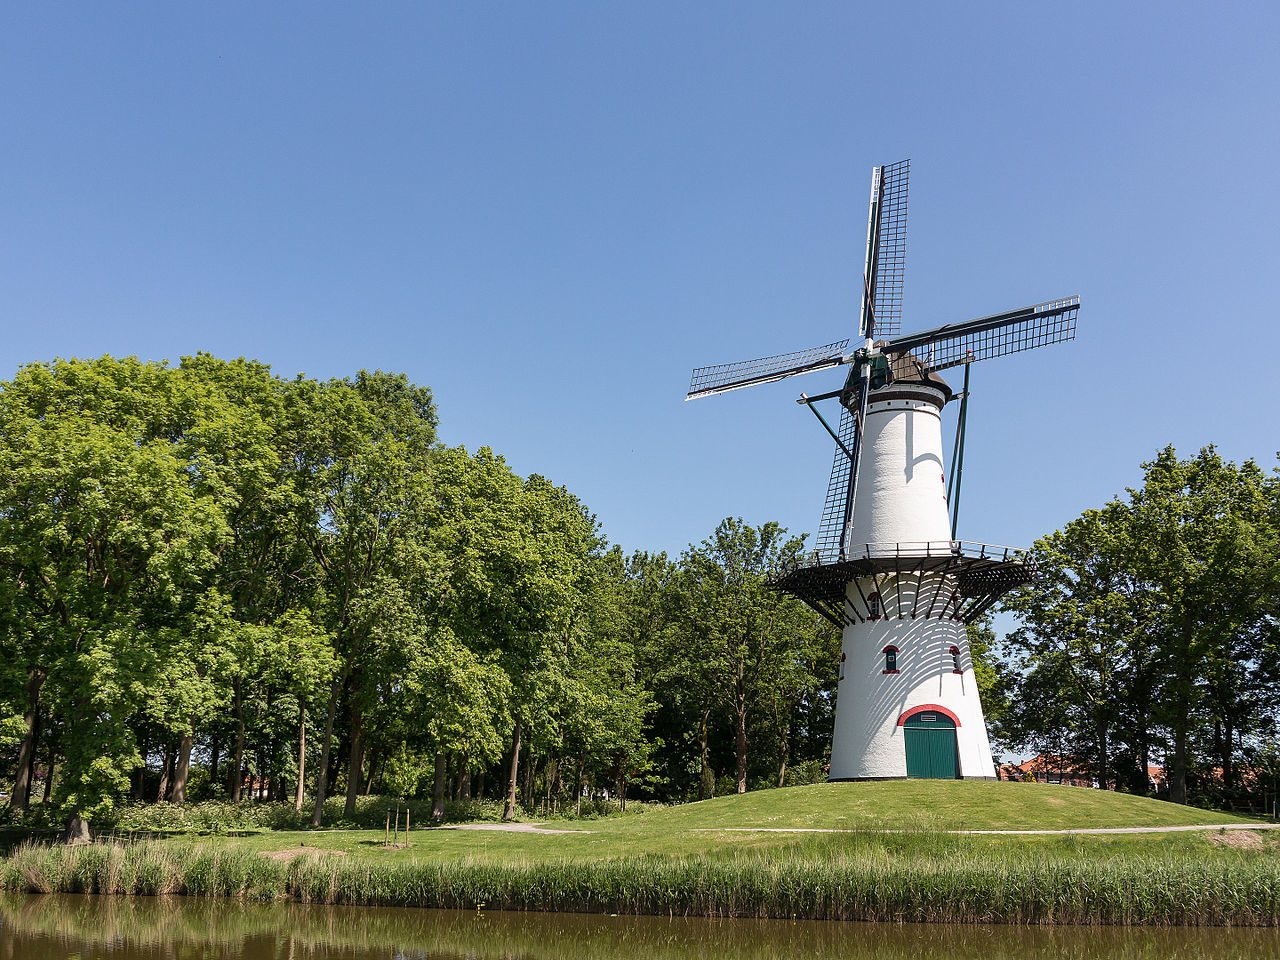 Holiday homes in Tholen and Sint Philipsland